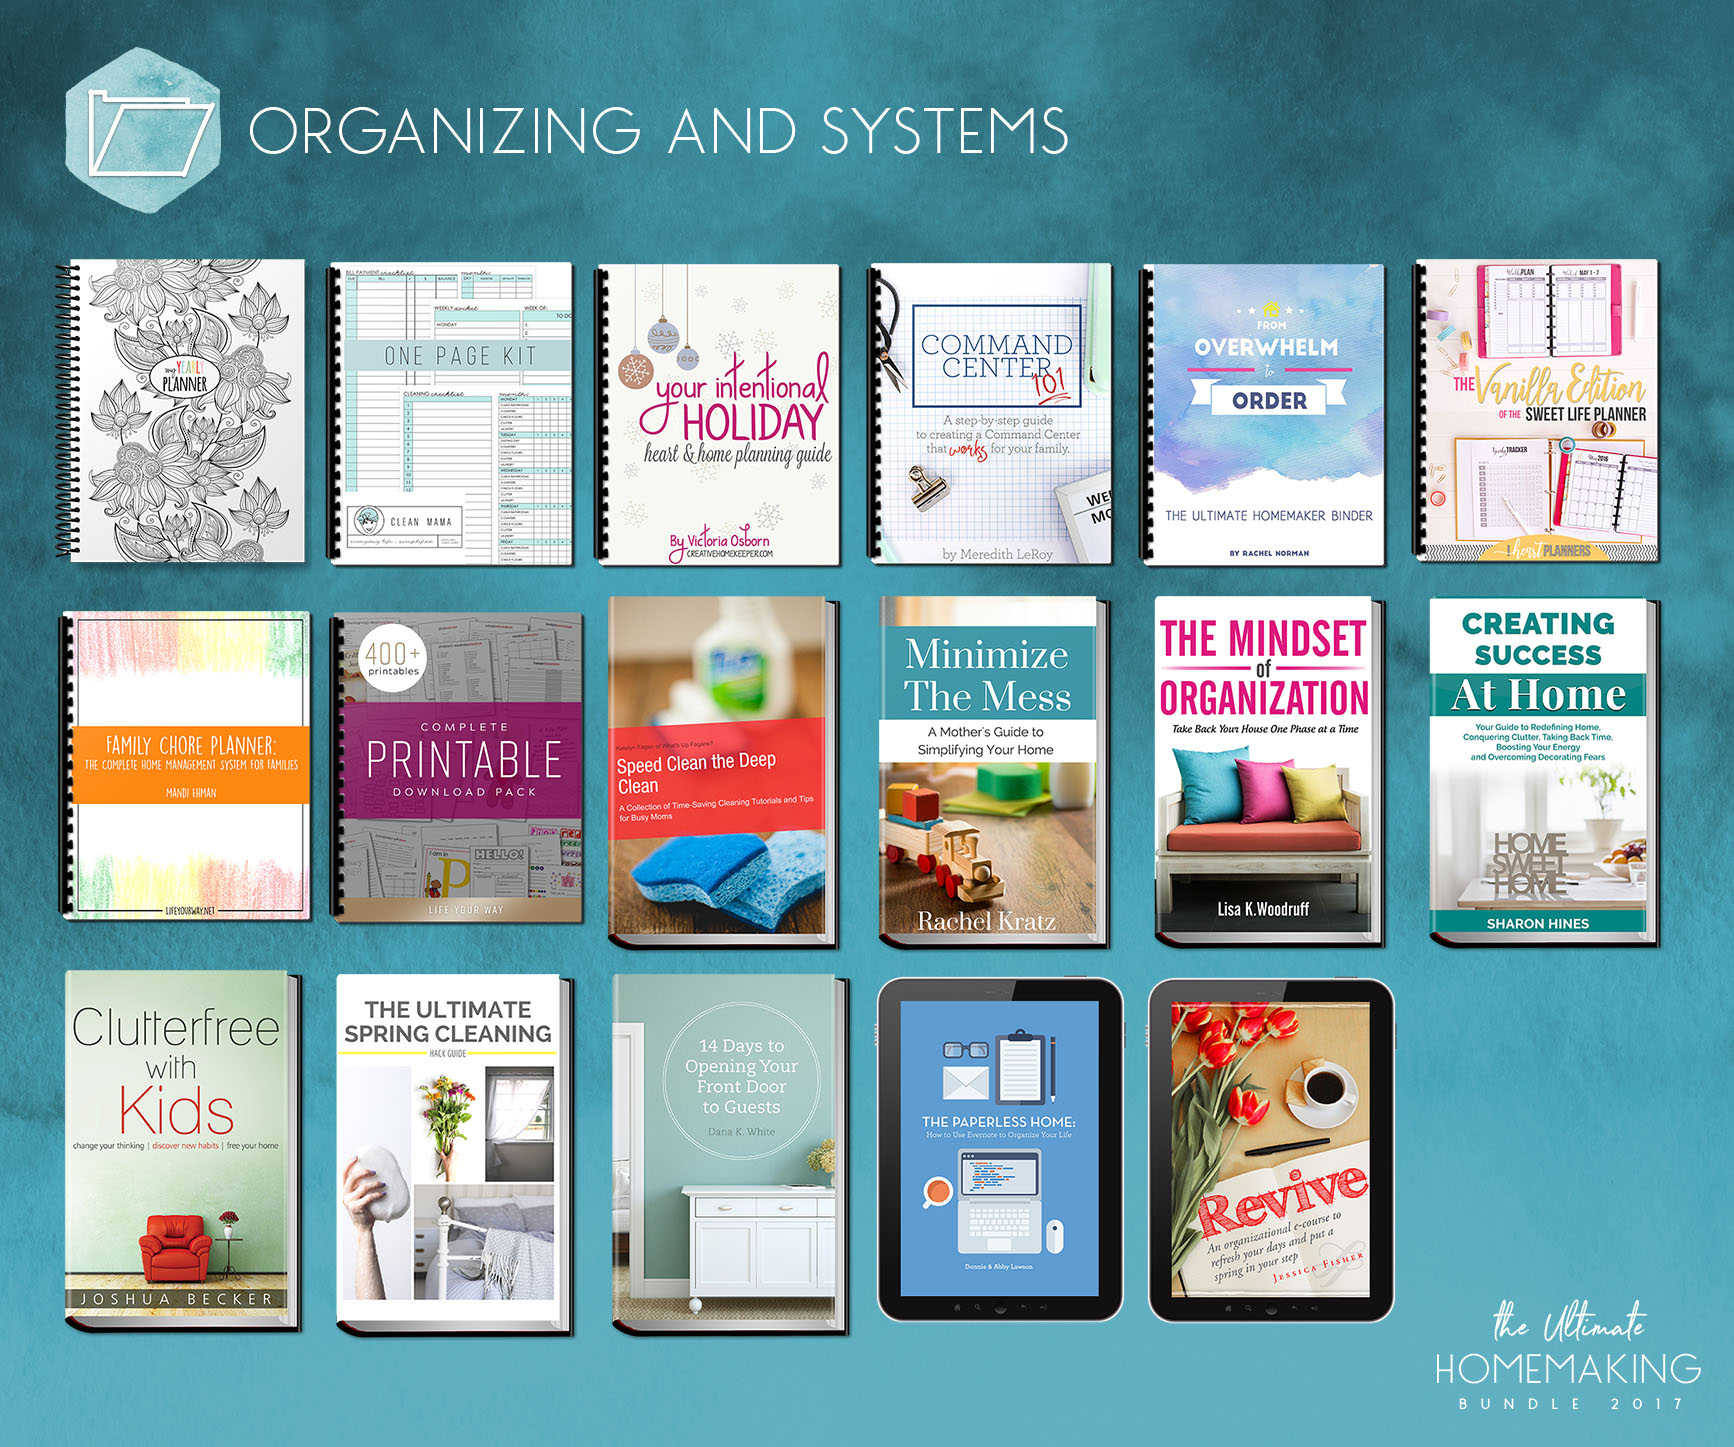 Here are the organizing and systems resources available in the Ultimate Homemaking Bundle.